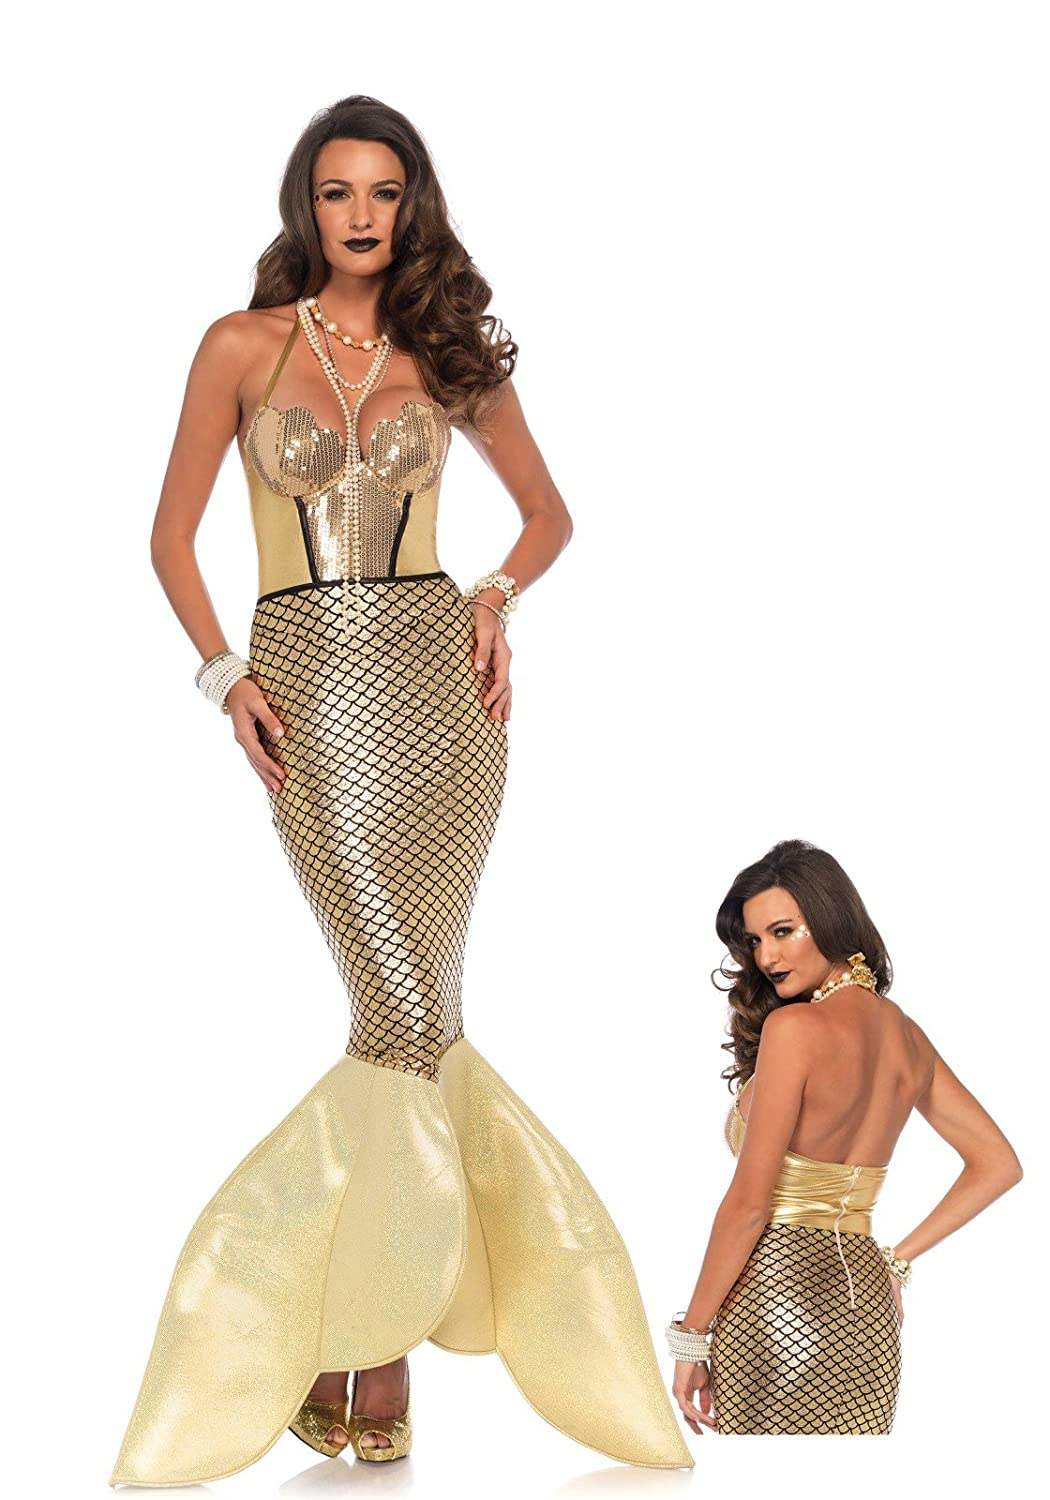 Women's Golden Glimmer Mermaid Costume Gown - DeluxeAdultCostumes.com